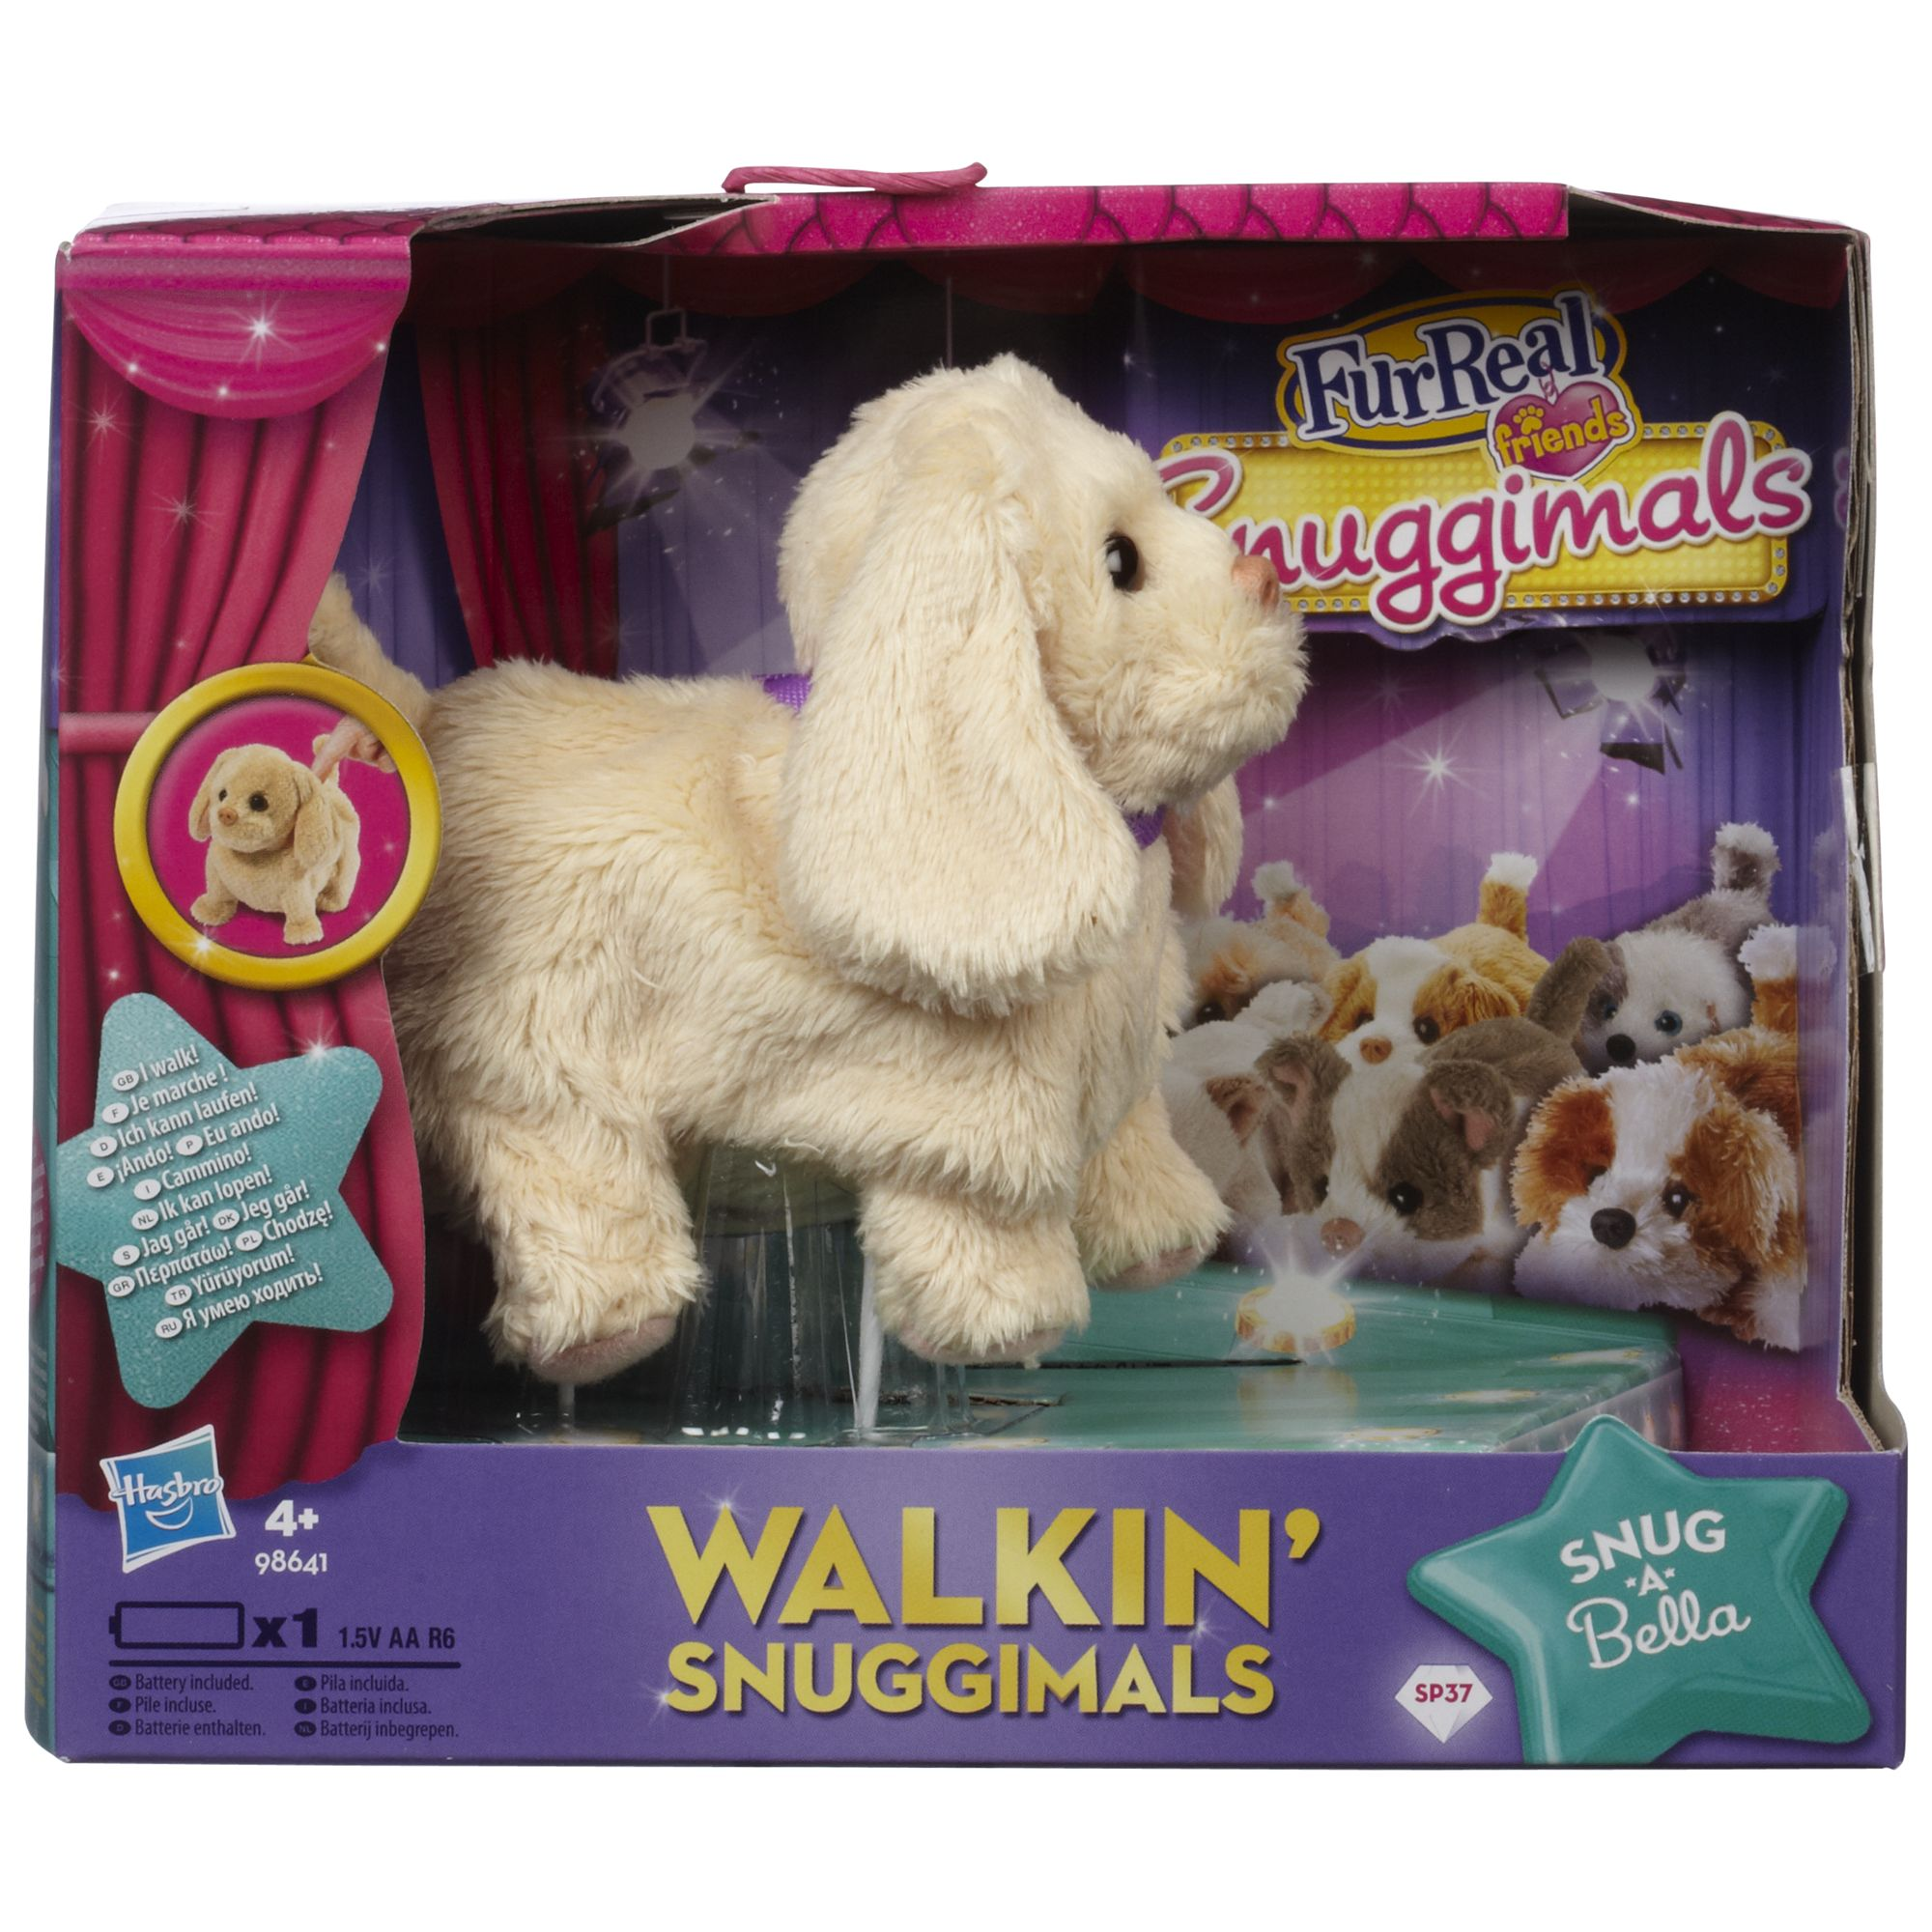 FurReal Walking Snuggimal Assorted